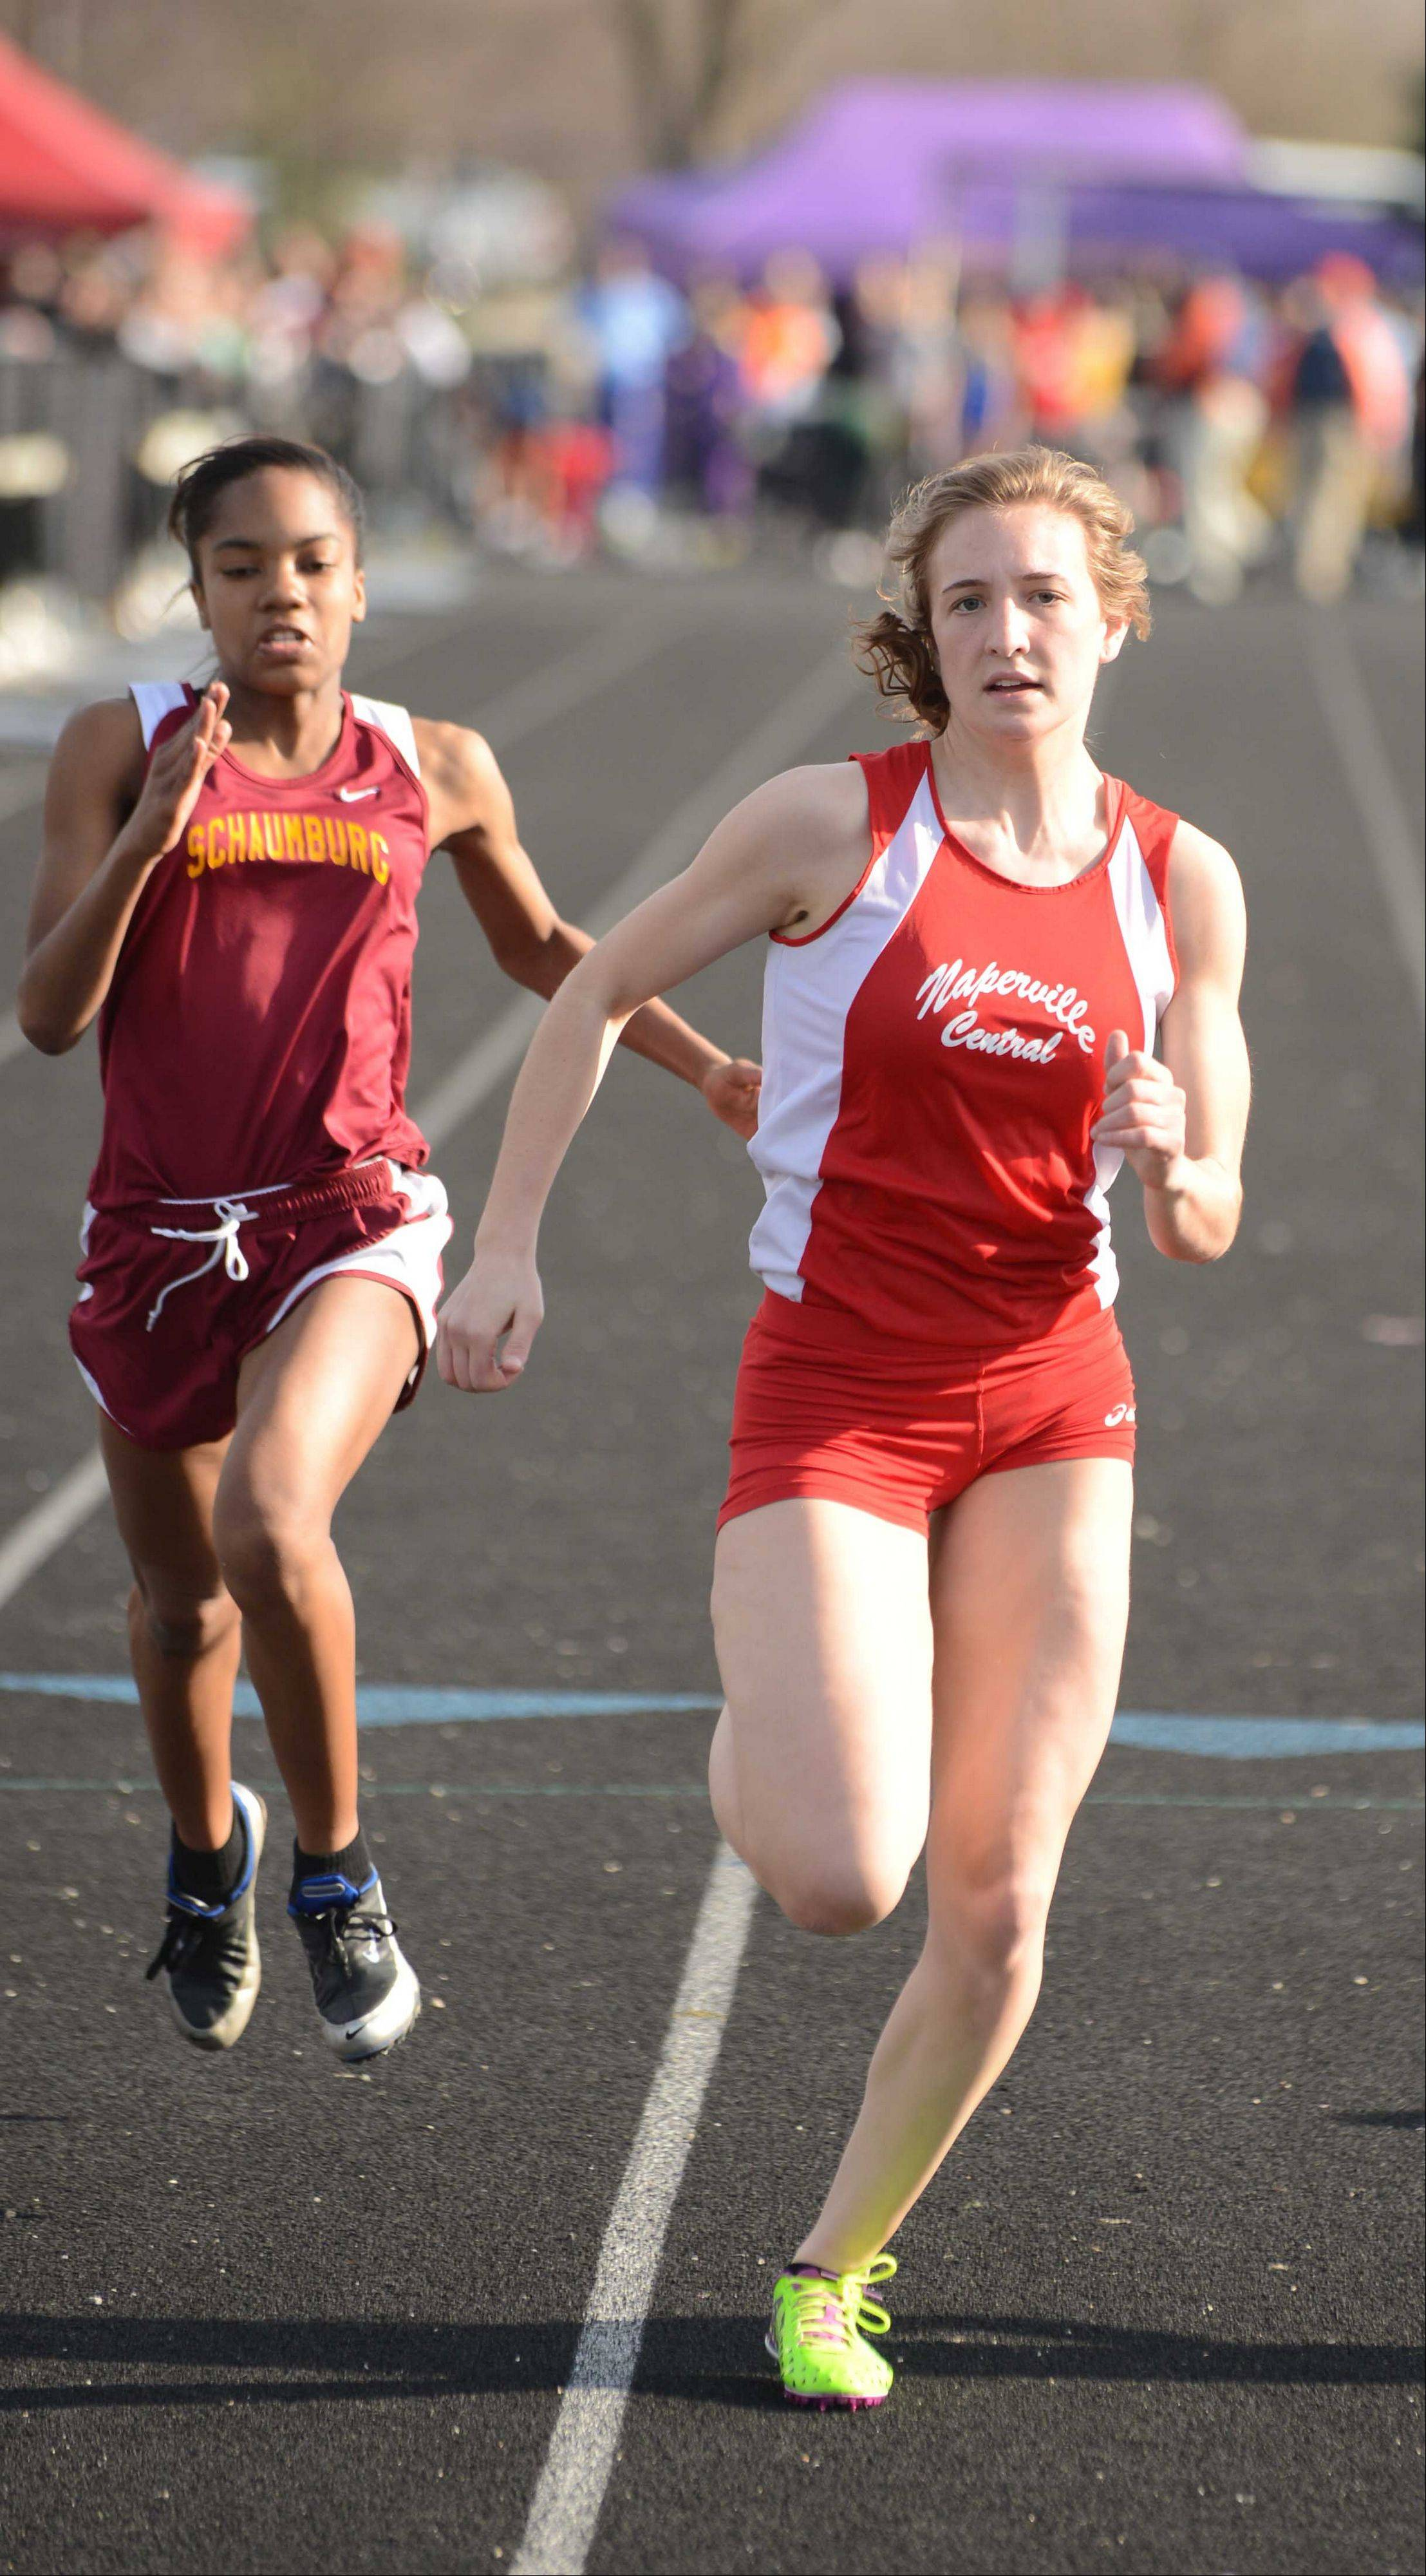 Lauren Erickson of Naperville Central runs the 100 meter dash during the Wheaton Warrenville South girls track meet Friday.